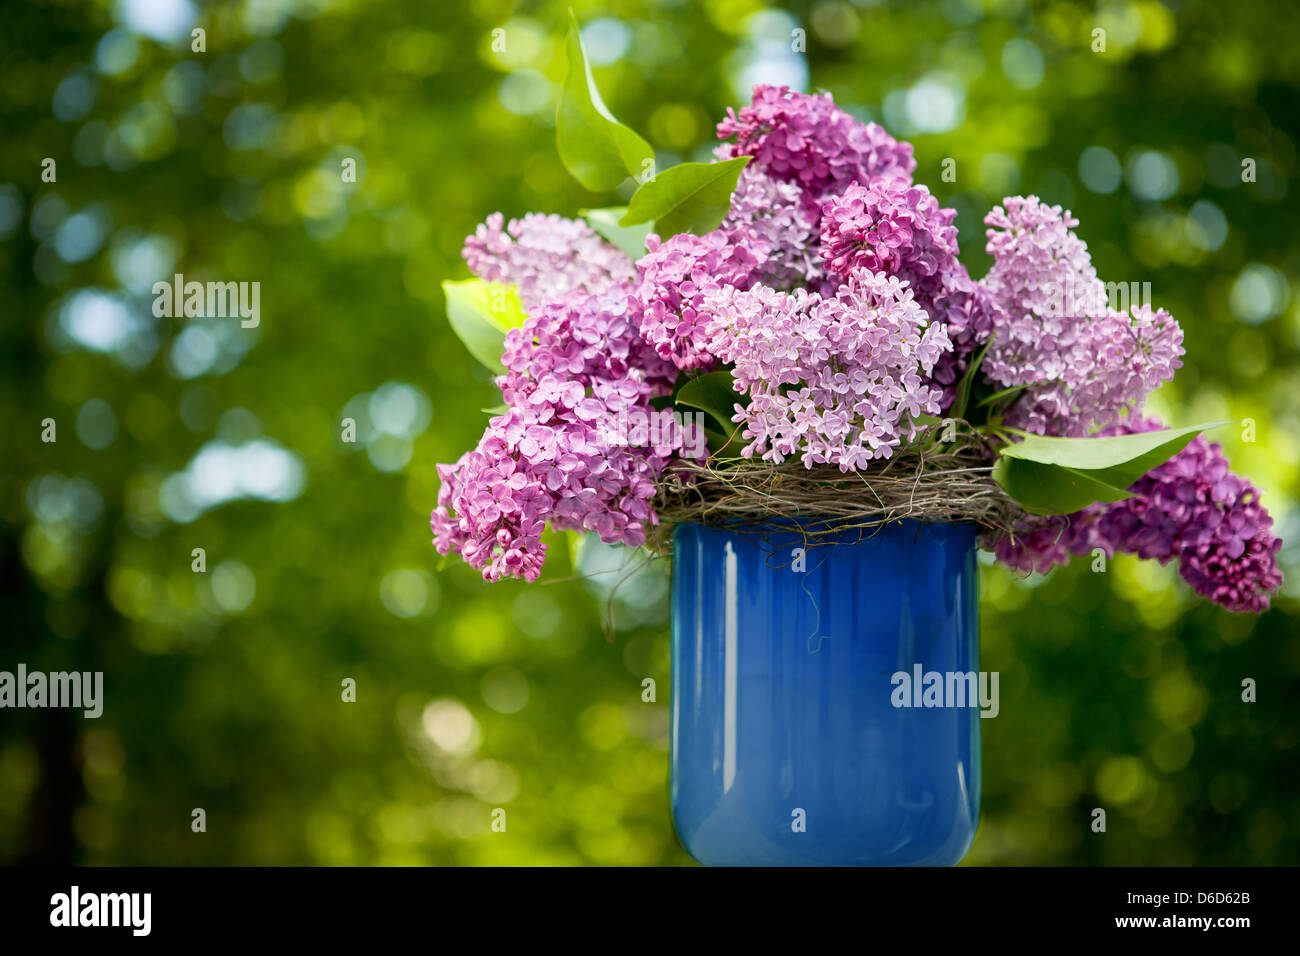 bunch of lilac flowers - Stock Image